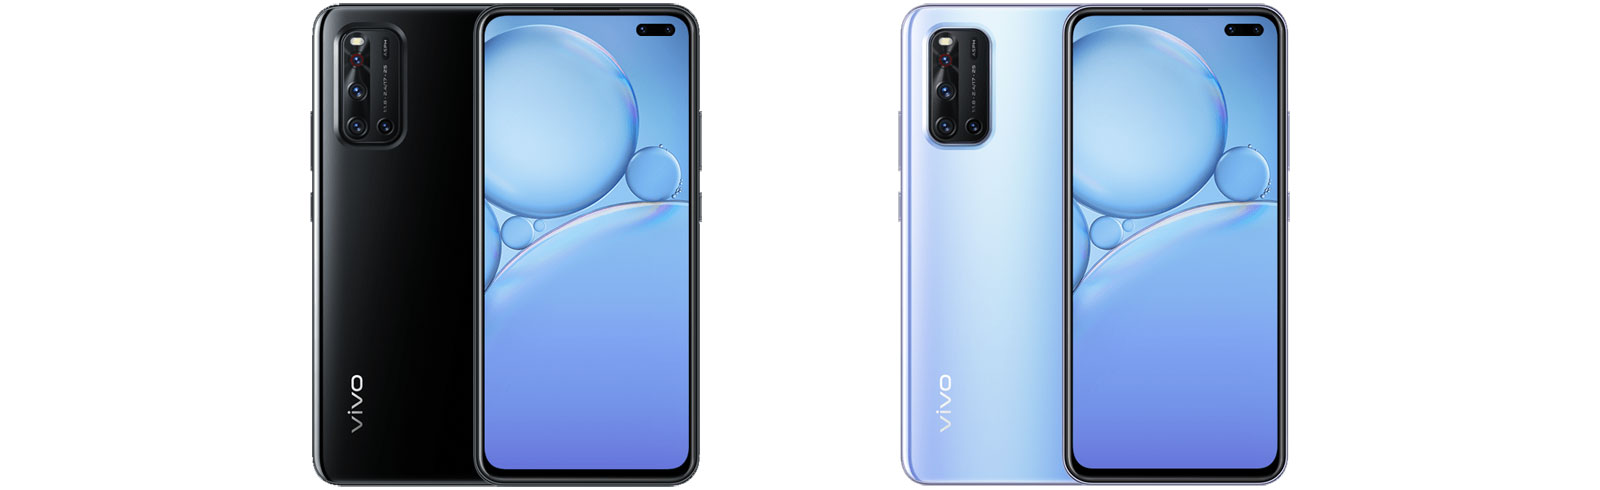 Vivo V19 goes official with SD12, 6.44 FHD+ AMOLED display, 4500 mAh battery with 33W charging